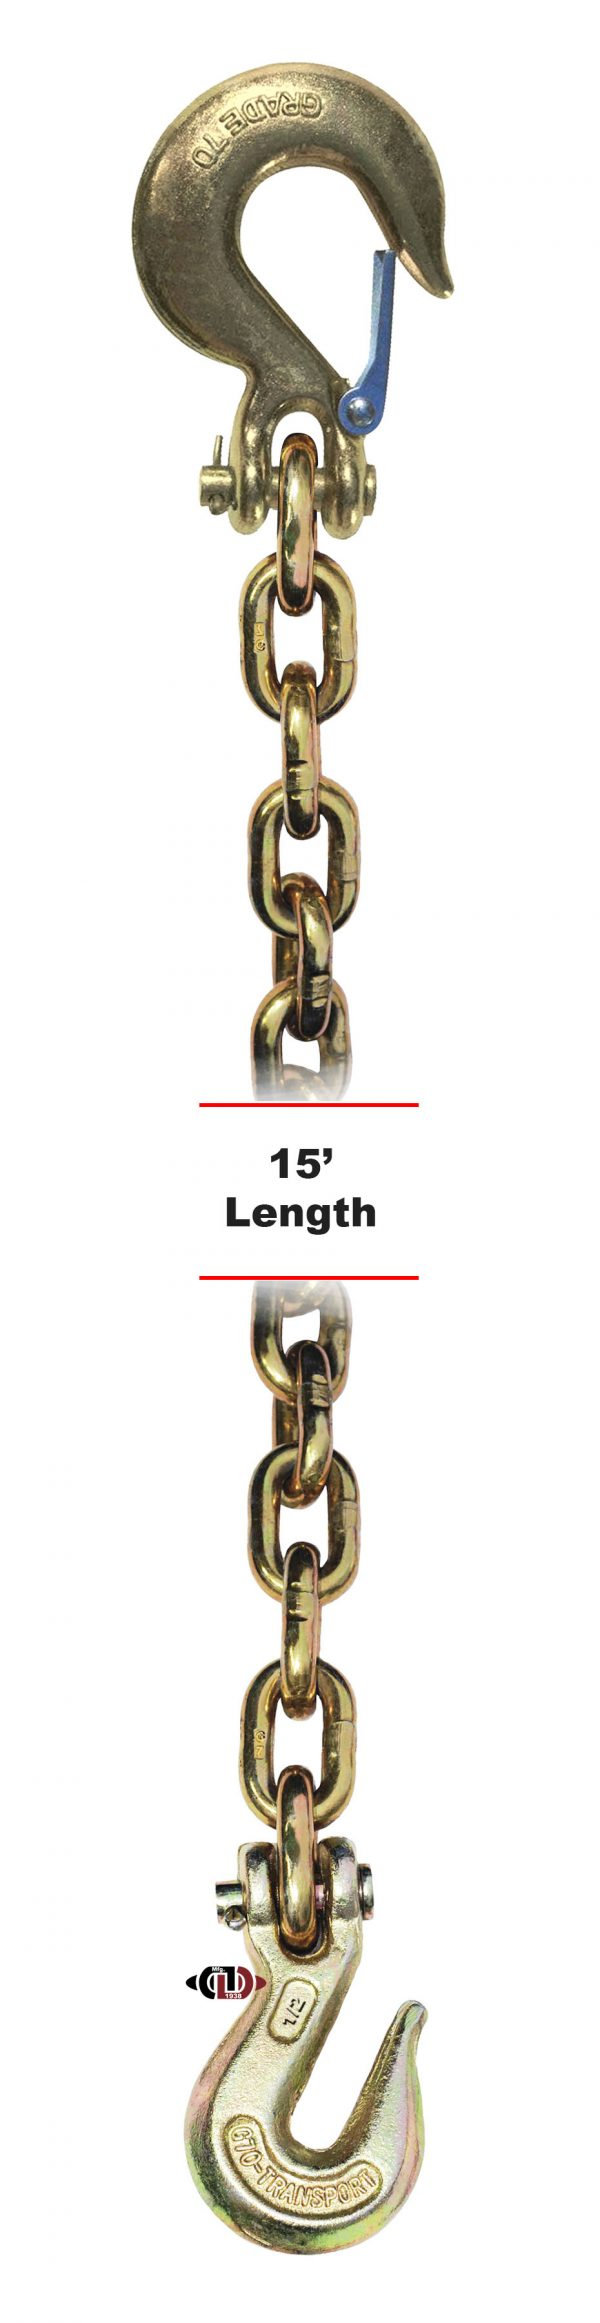 """G-70 1/2"""" x 15' Chain with Grab Hook One End & Slip Hook One End DBC-12x15-G7-CSCGH"""